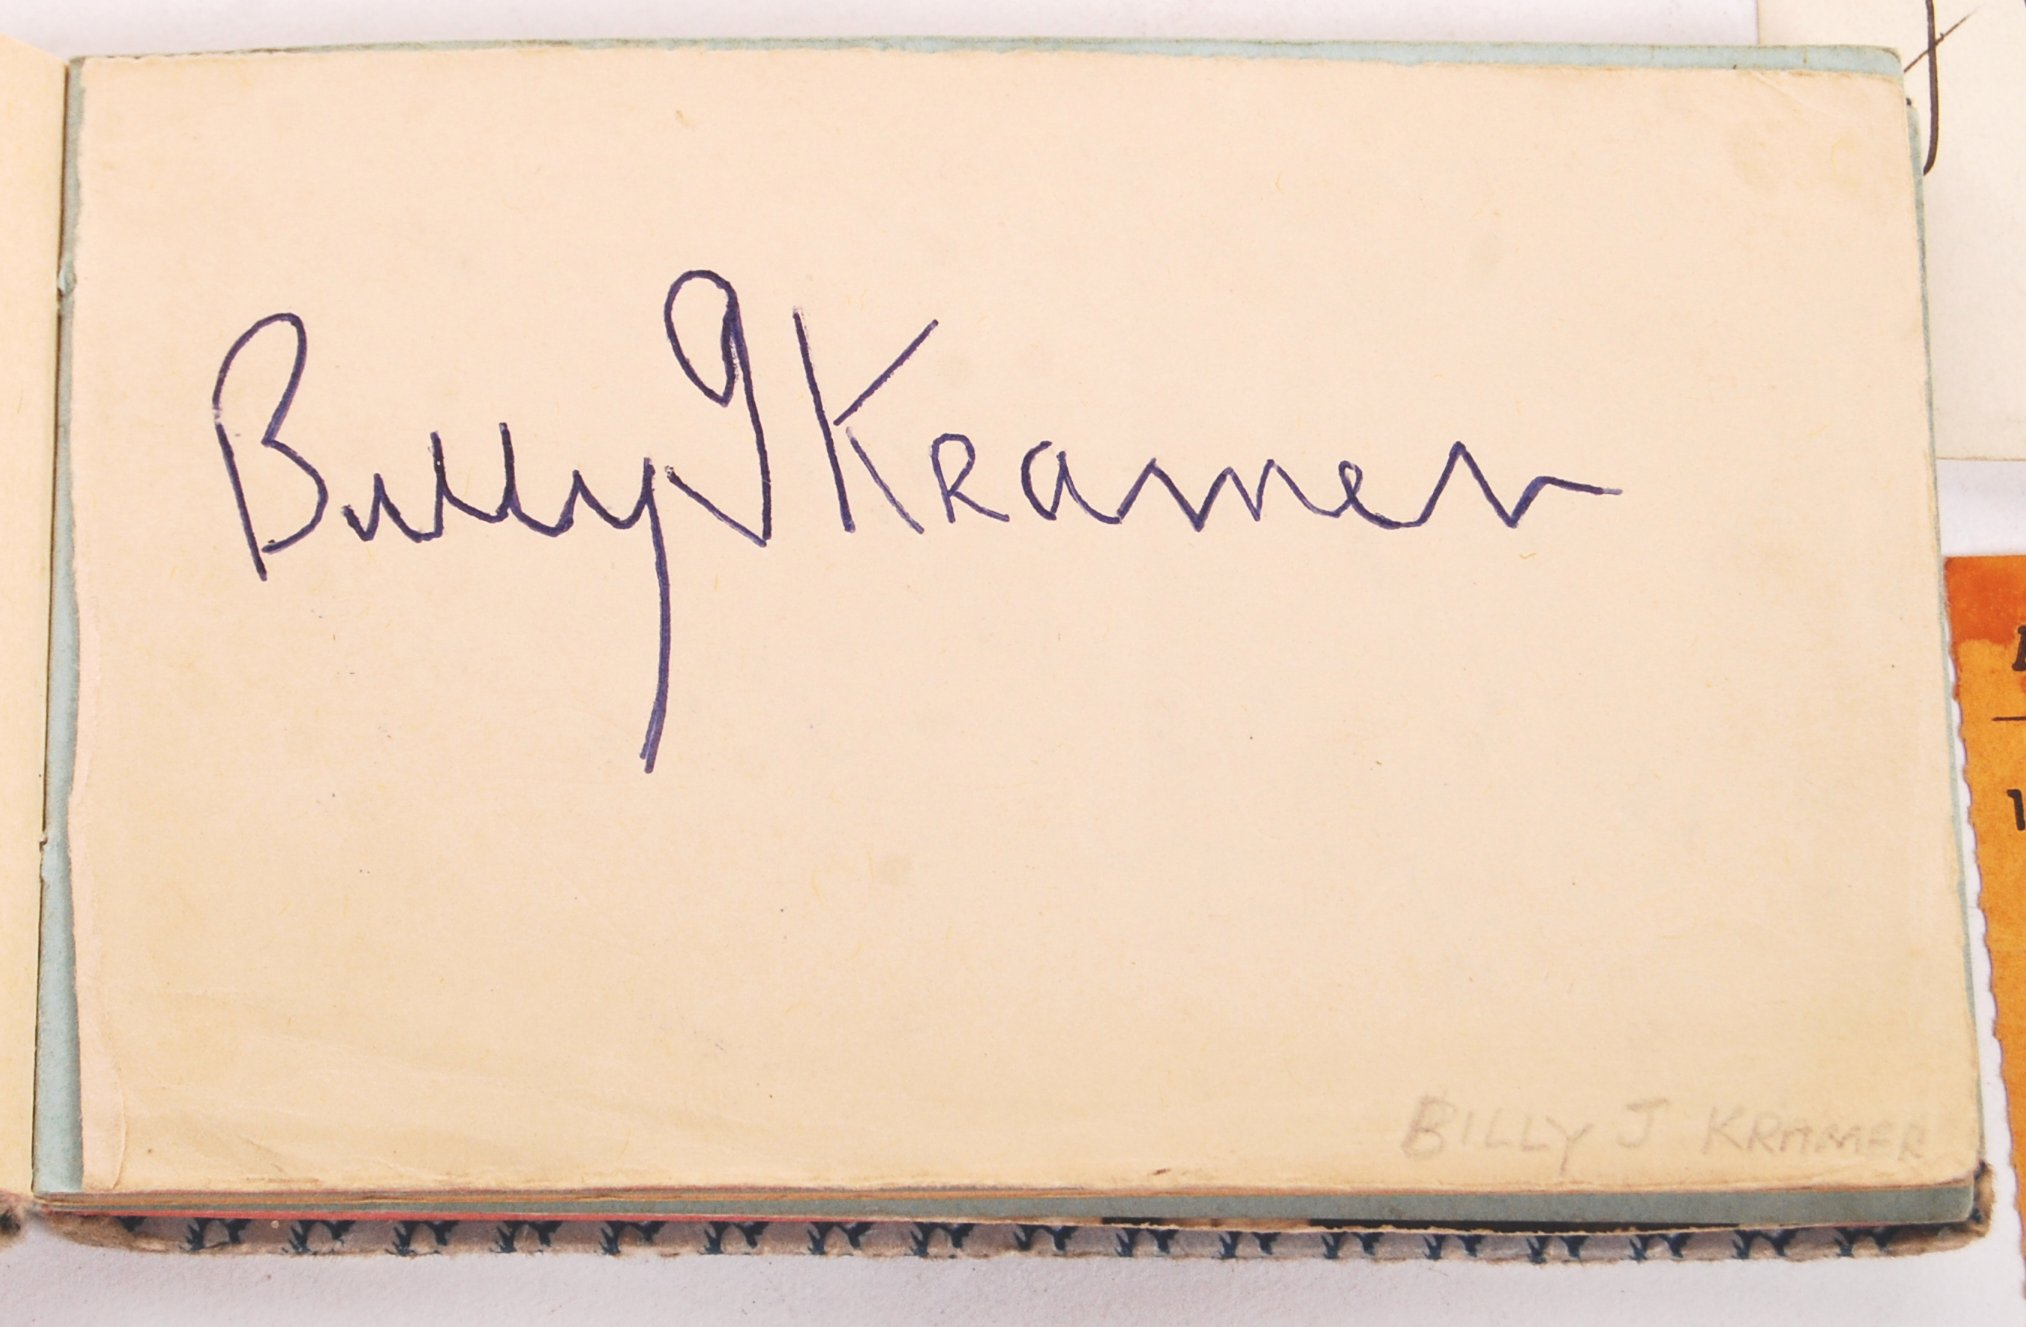 INCREDIBLY RARE PERSONAL BEATLES AUTOGRAPH COLLECT - Image 7 of 12